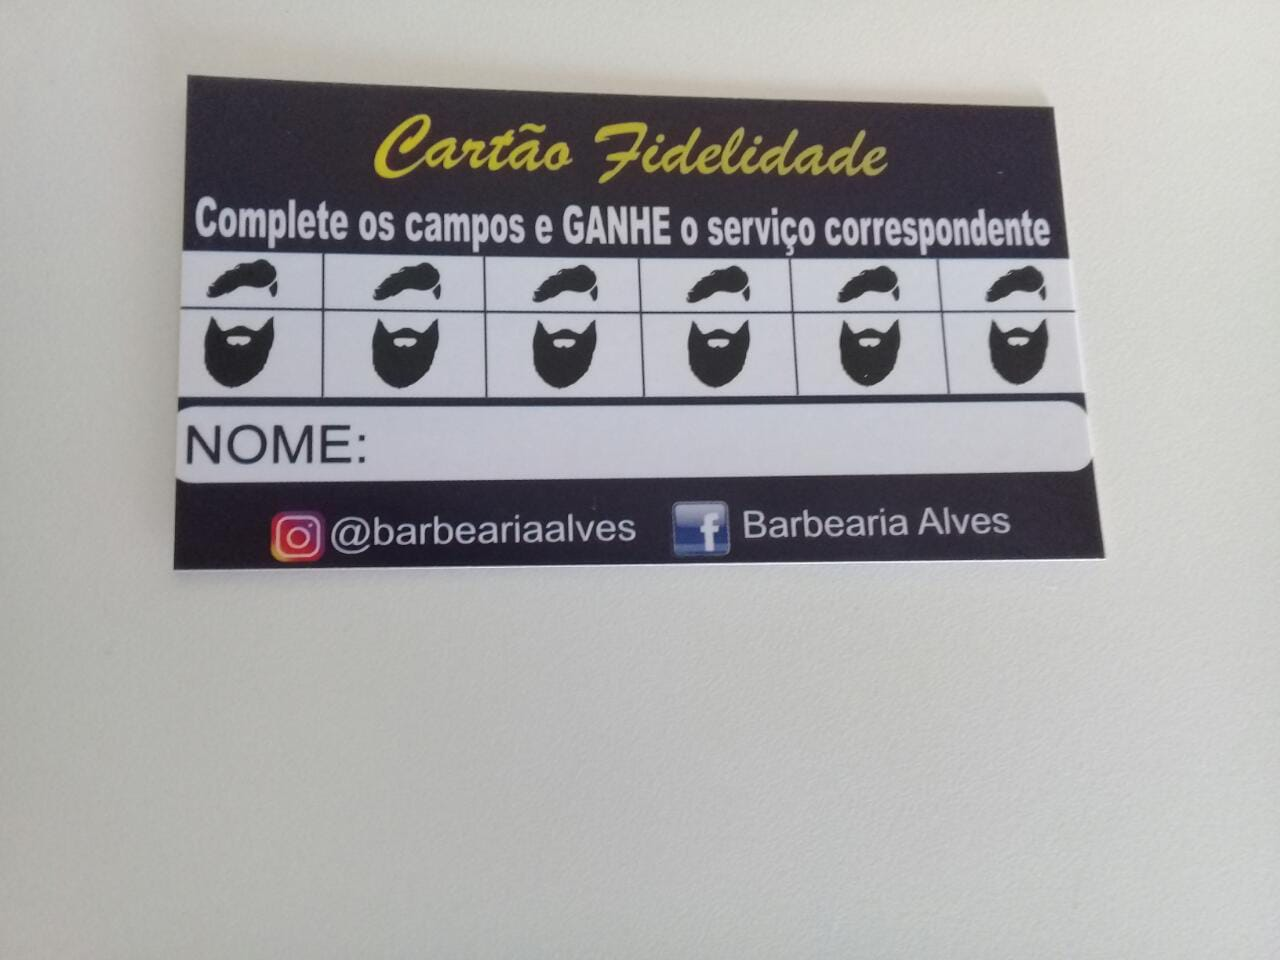 Barbearia Alves